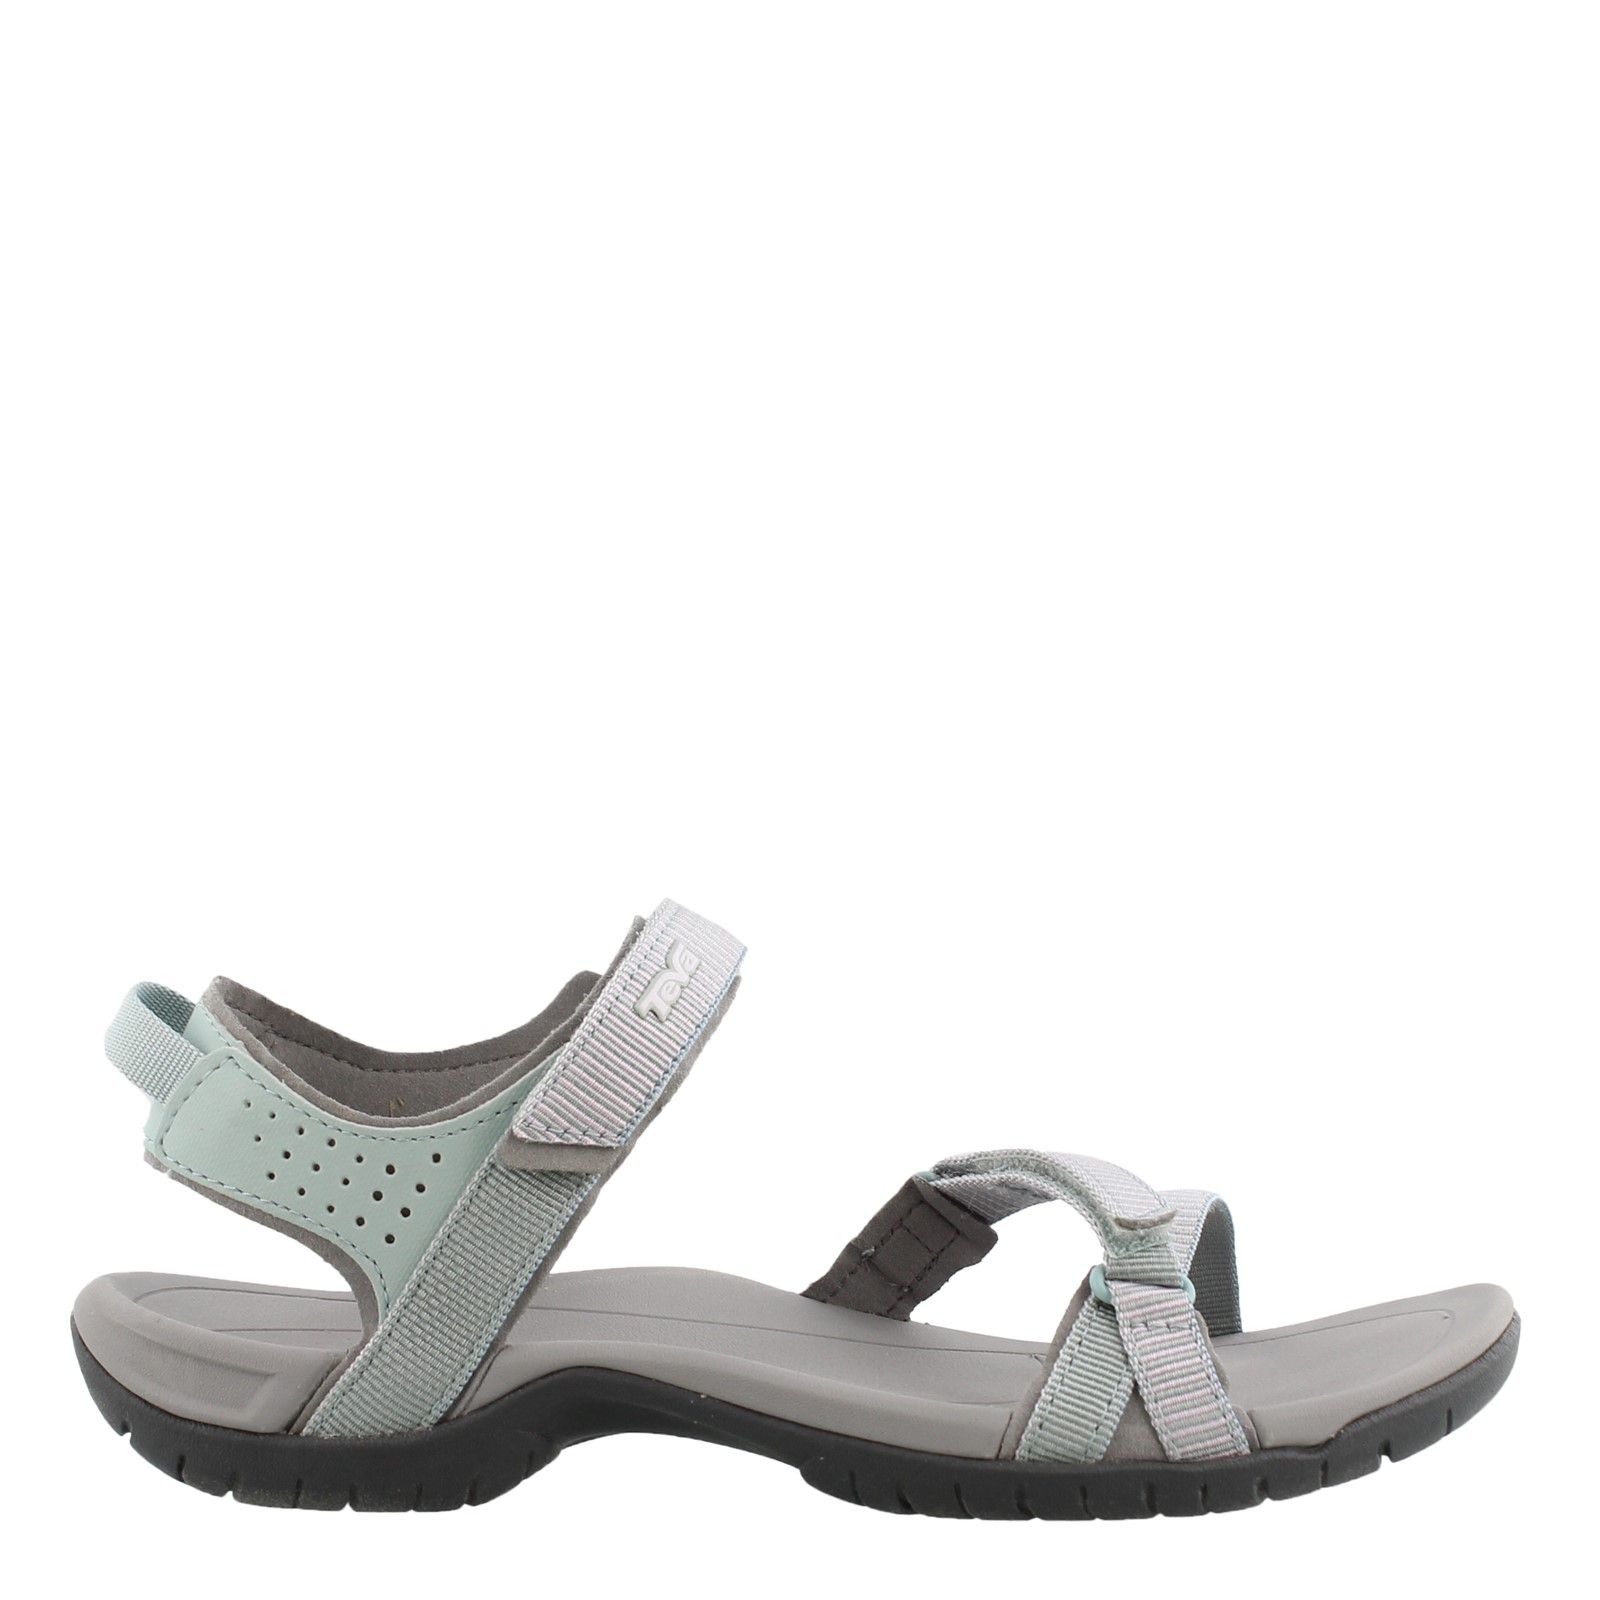 Women's Teva, Verra Sporty Sandals